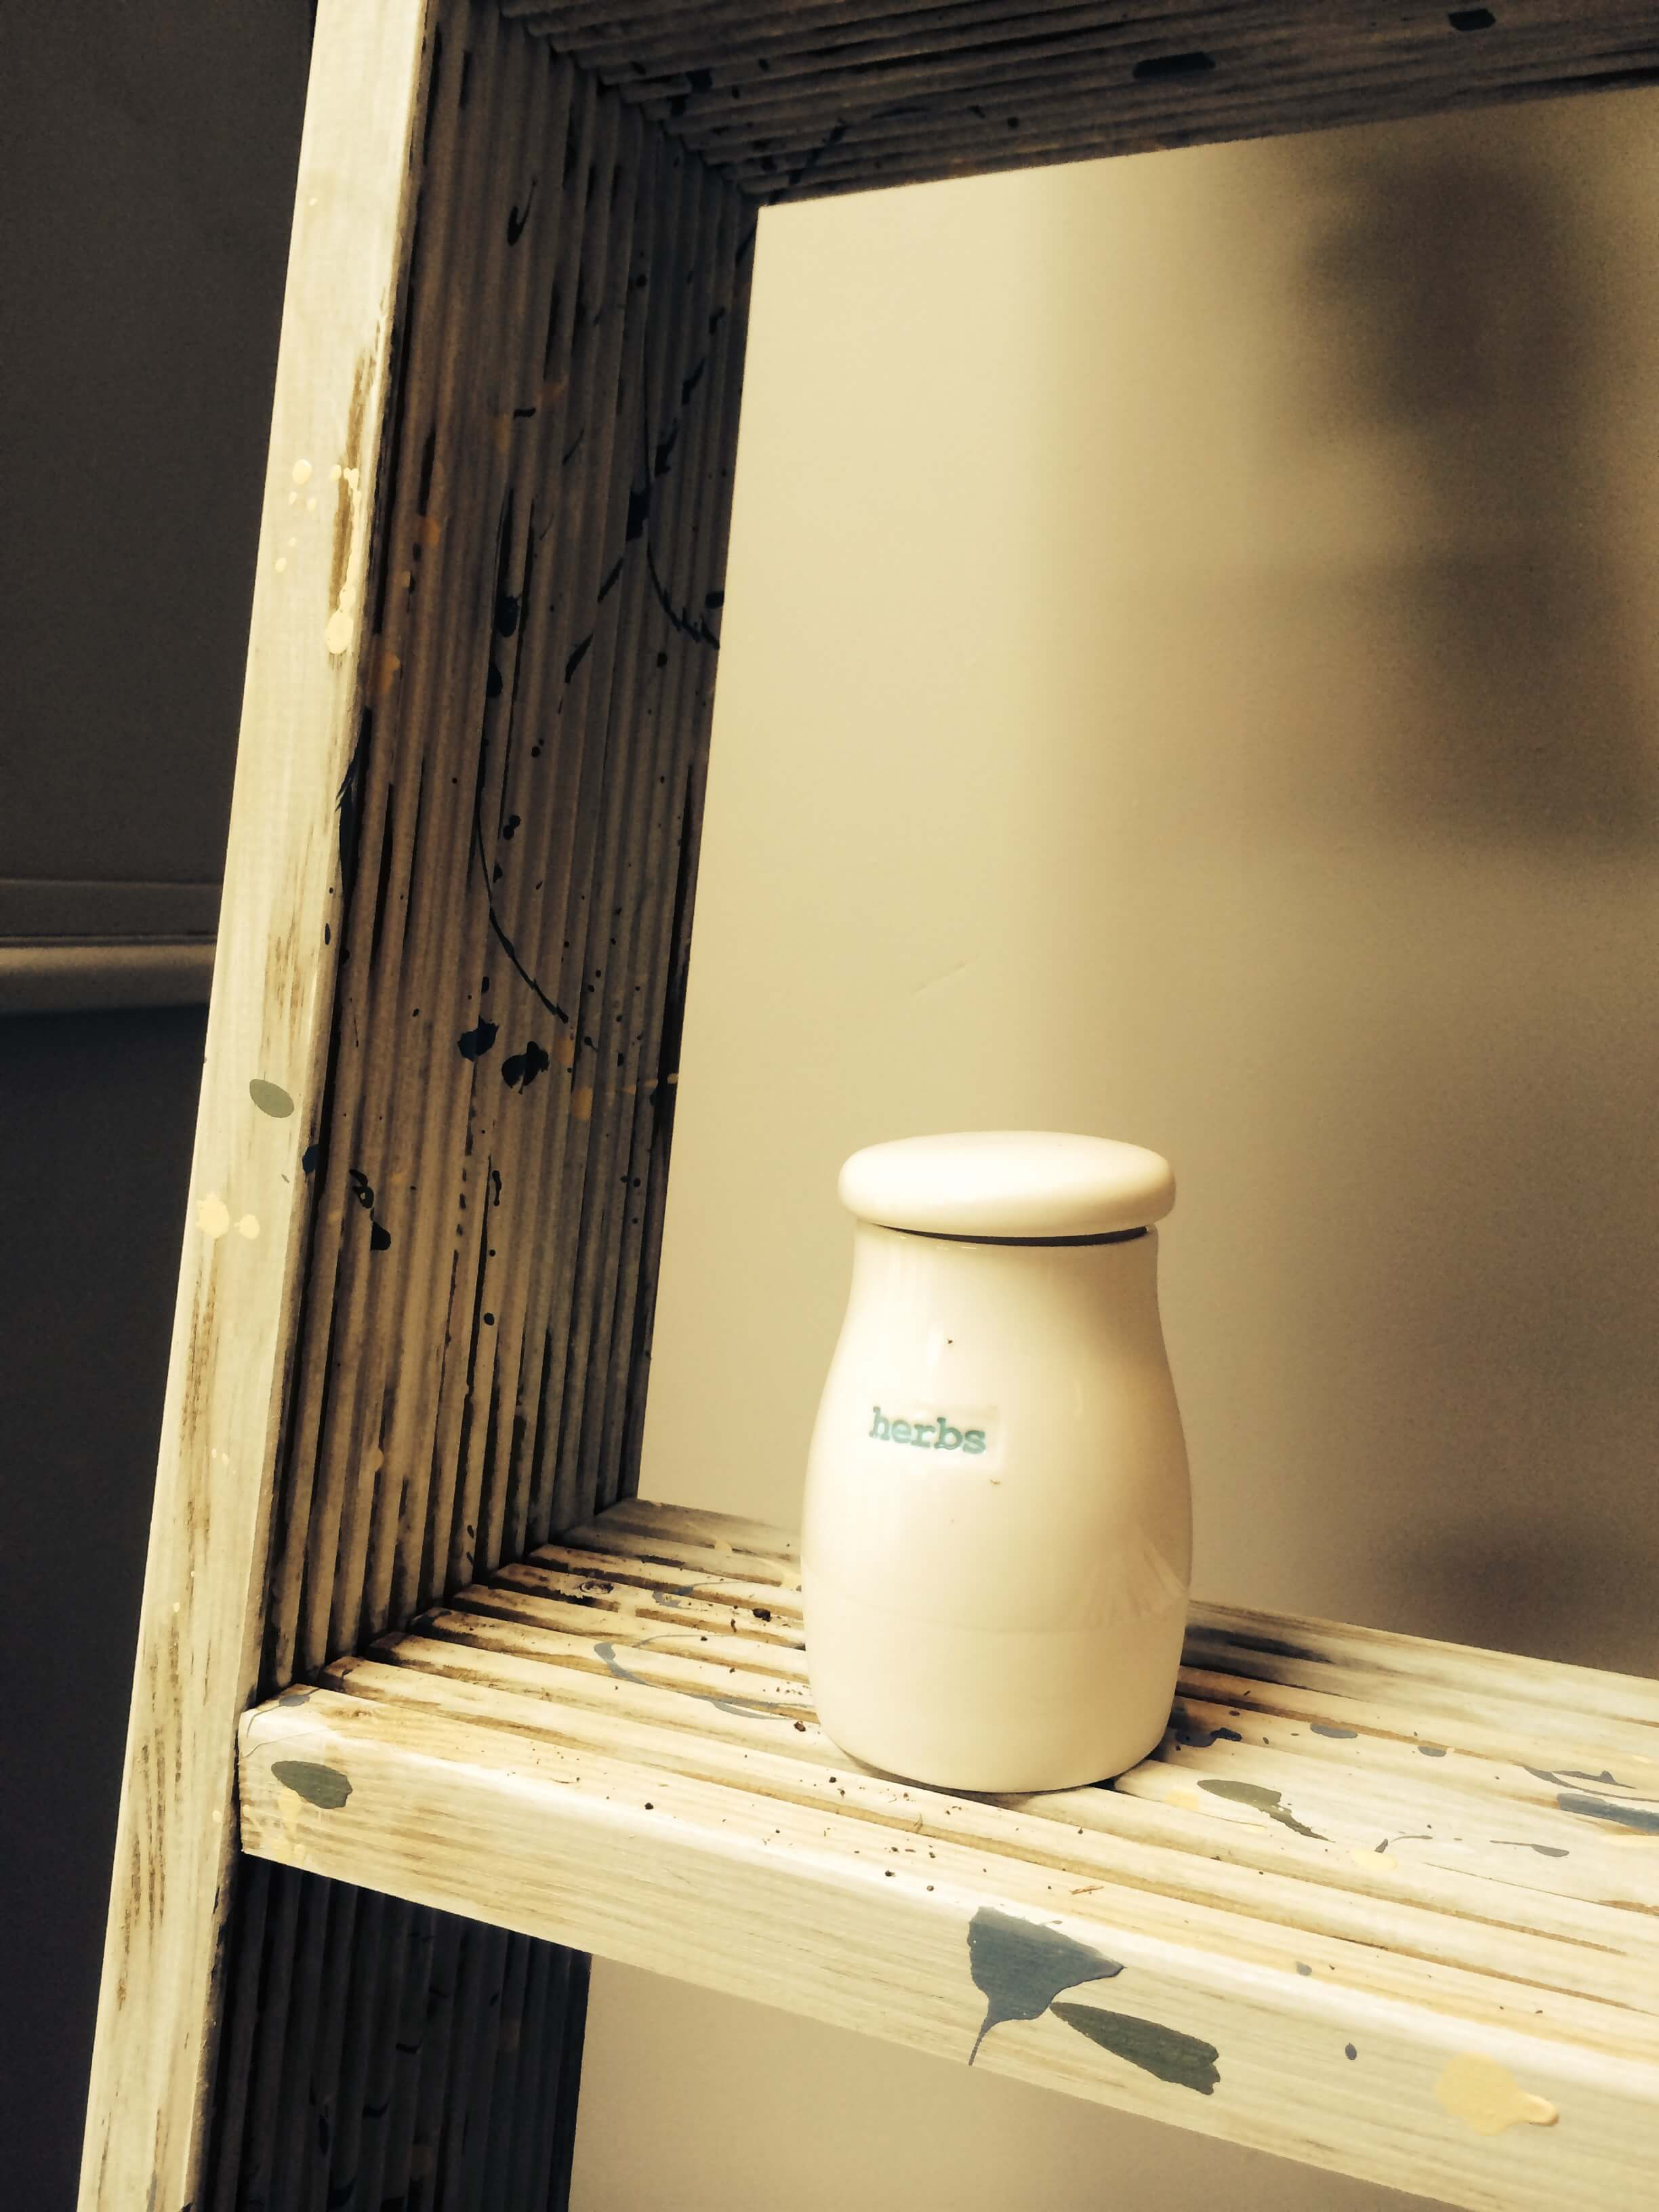 A close up of the shelf and an herb container accent sitting upon it.